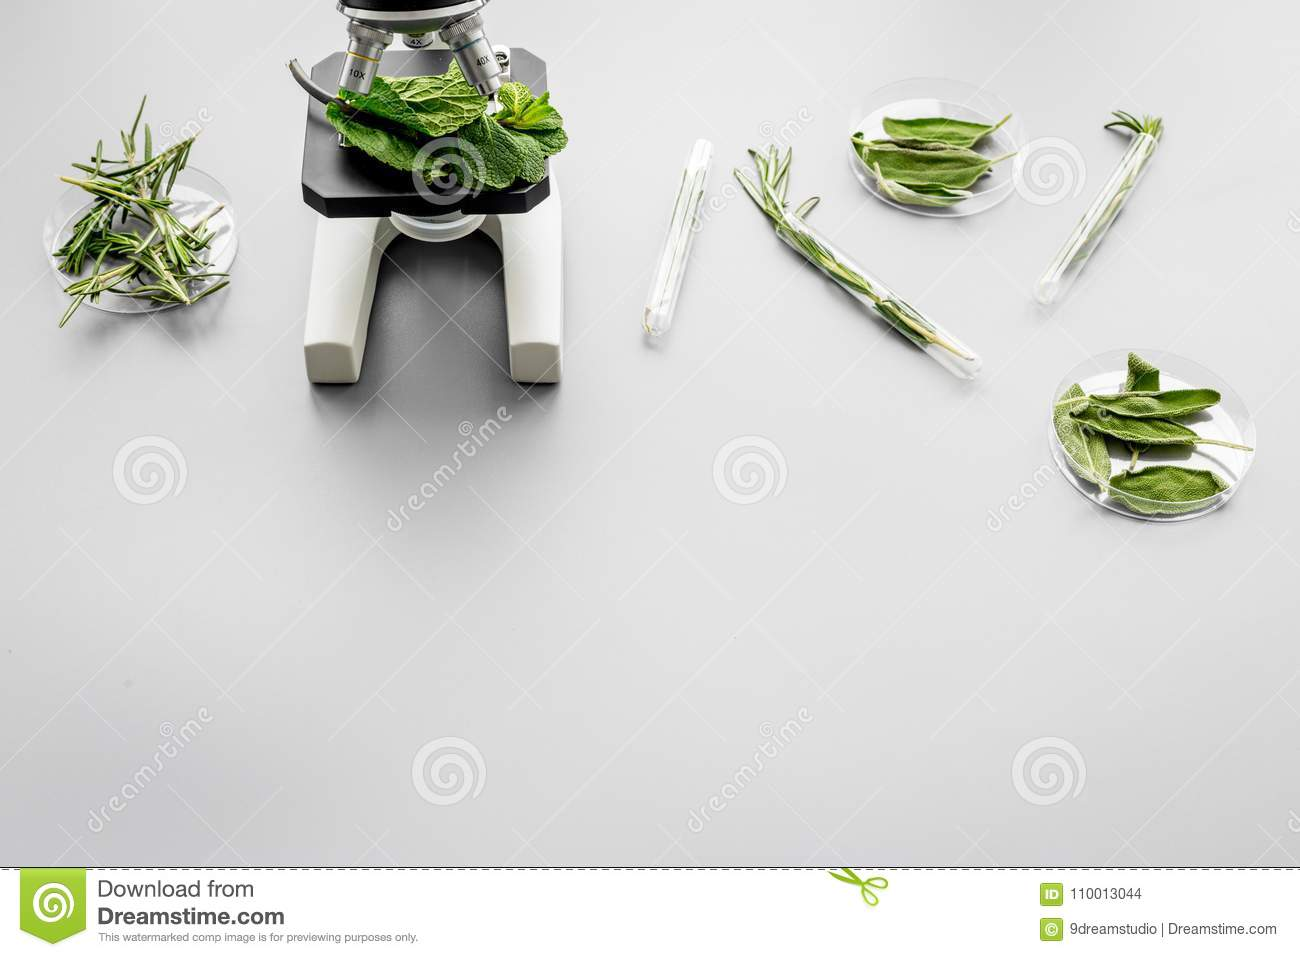 Safety food. Laboratory for food analysis. Herbs, greens under microscope on grey background top view copy space